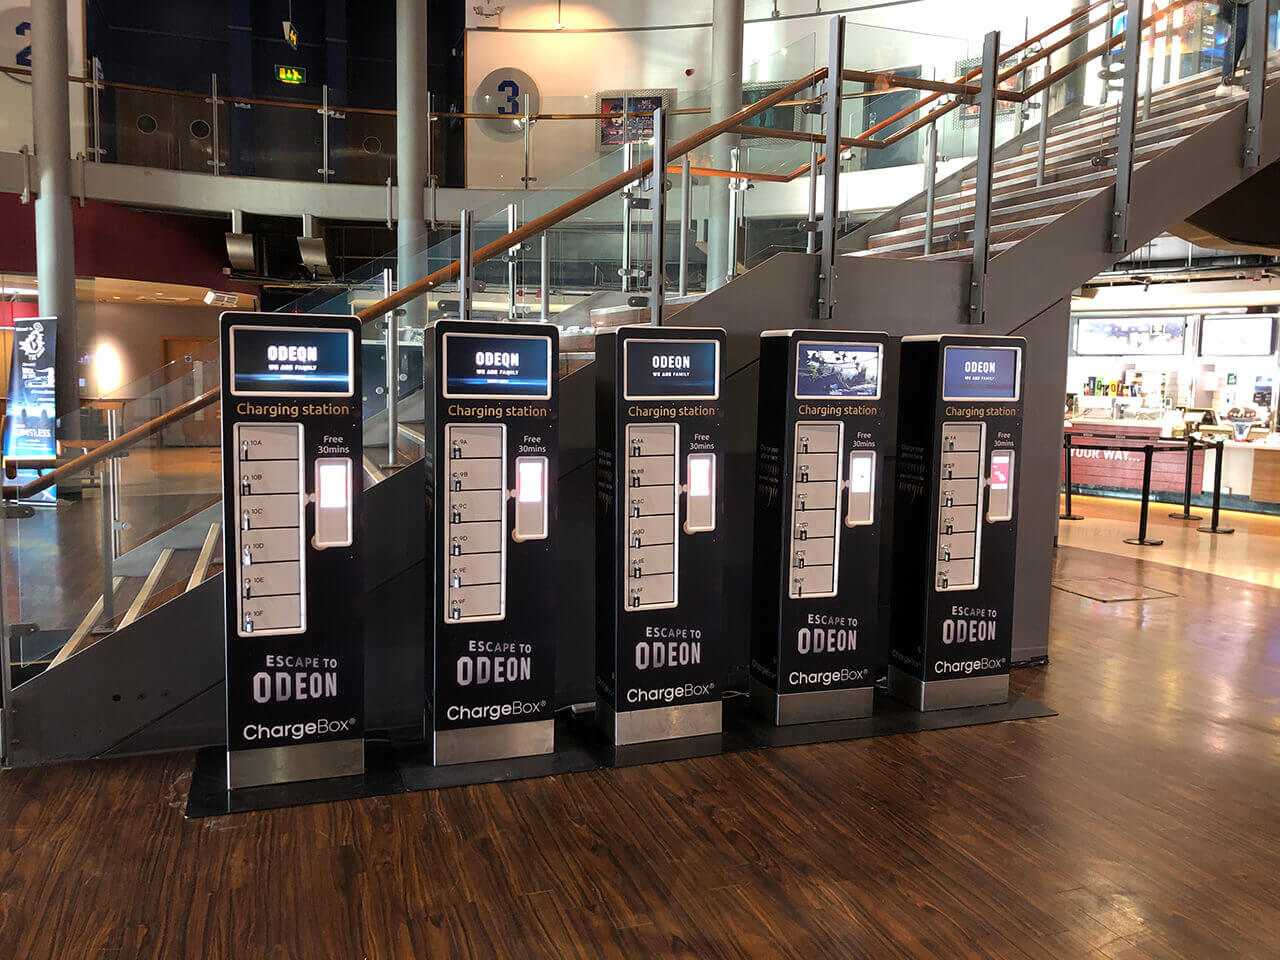 Odeon trials ChargeBox lockers in phoneless screenings initiative